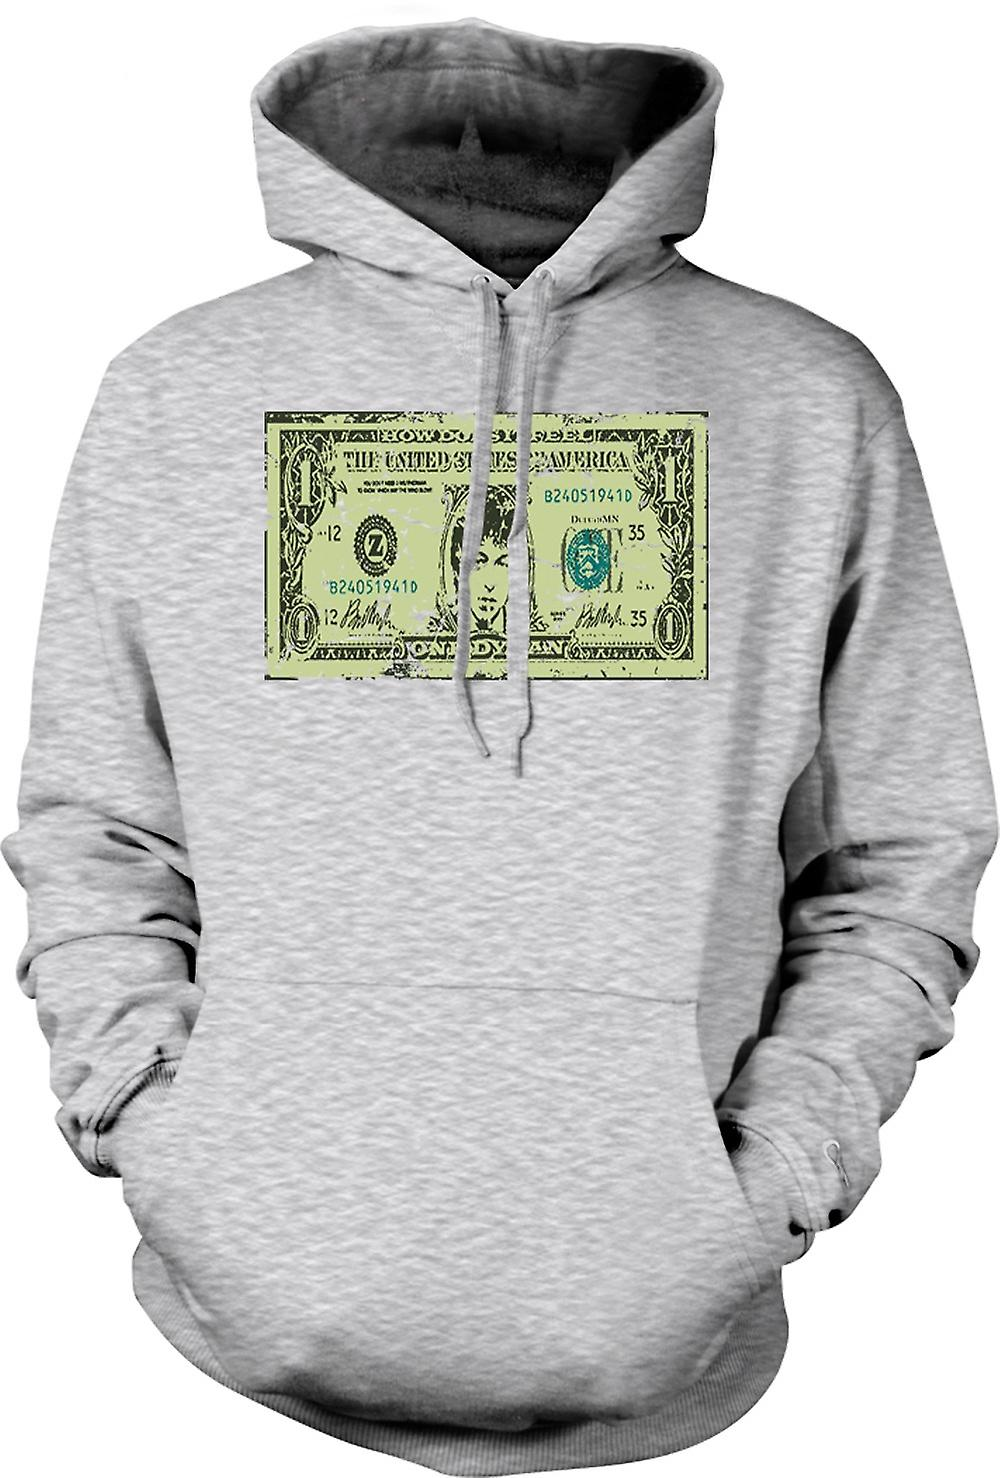 Mens Hoodie - Bob Dylan One Dylan - Funny